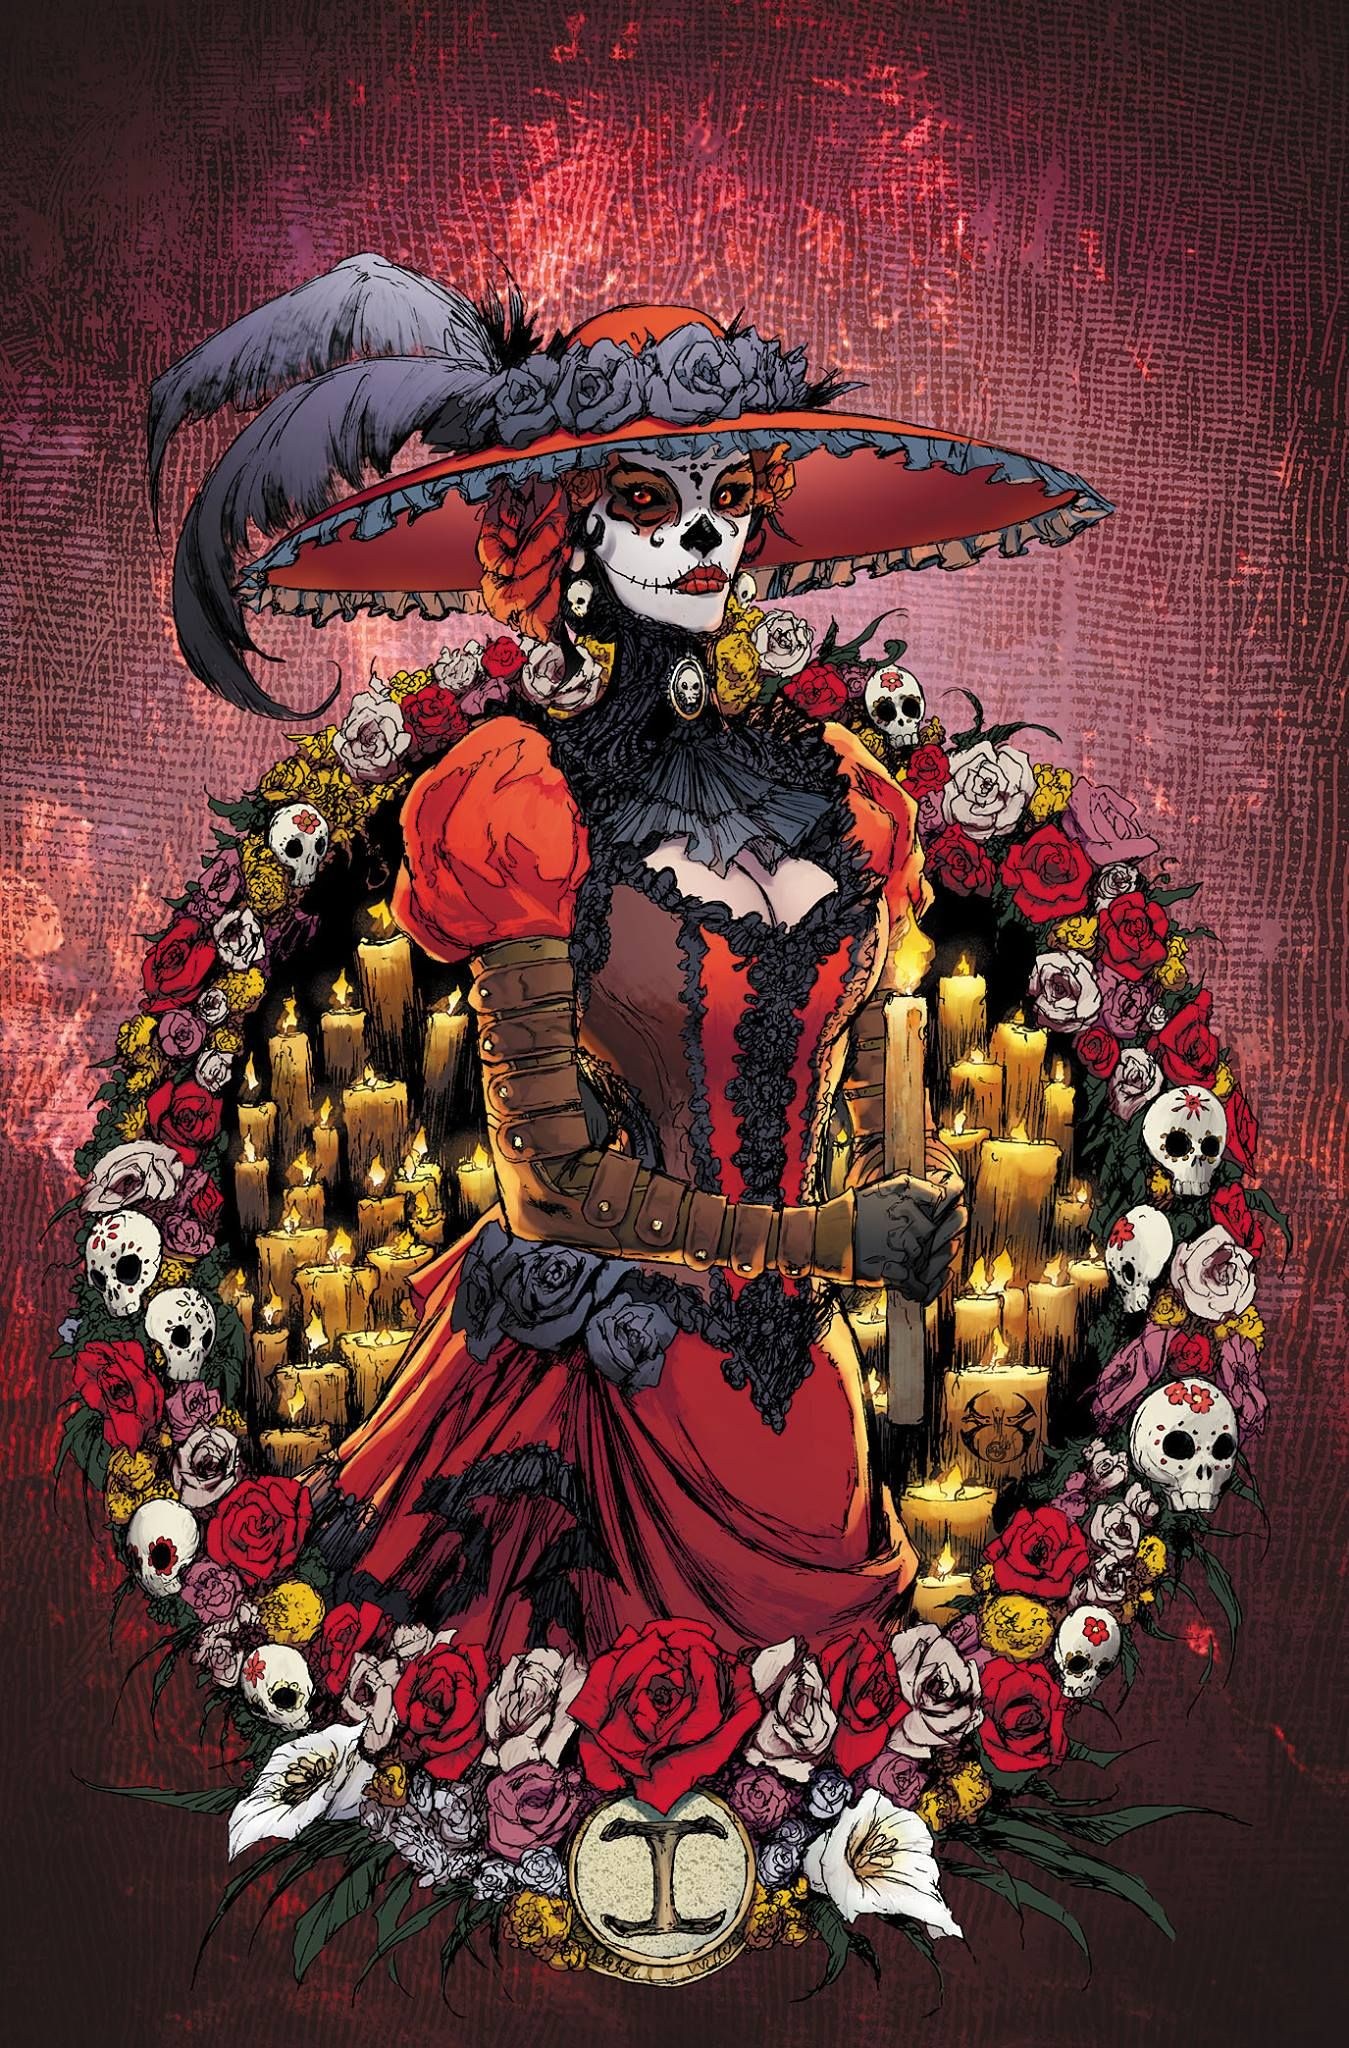 Lady Mechanika: Día de los Muertos # 1 - Cover by Joe Benitez and Peter Steigerwald